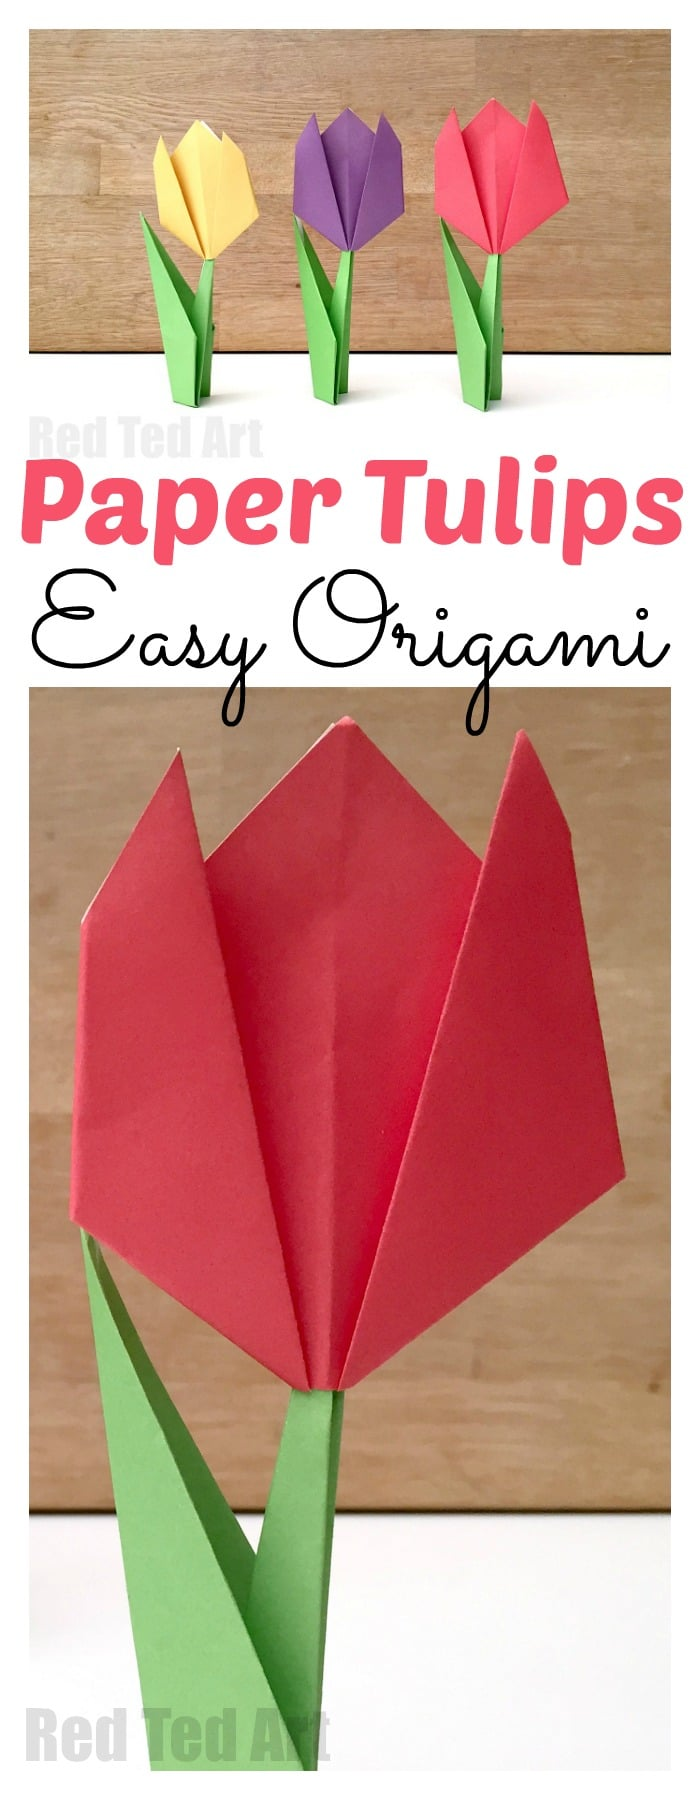 Easy Tulip Origami. Teach the kids Origami with this Paper Tulip Origami for Beginners. Easy Beginners Origami #tulip #paperflowers #origami #kidsorigami